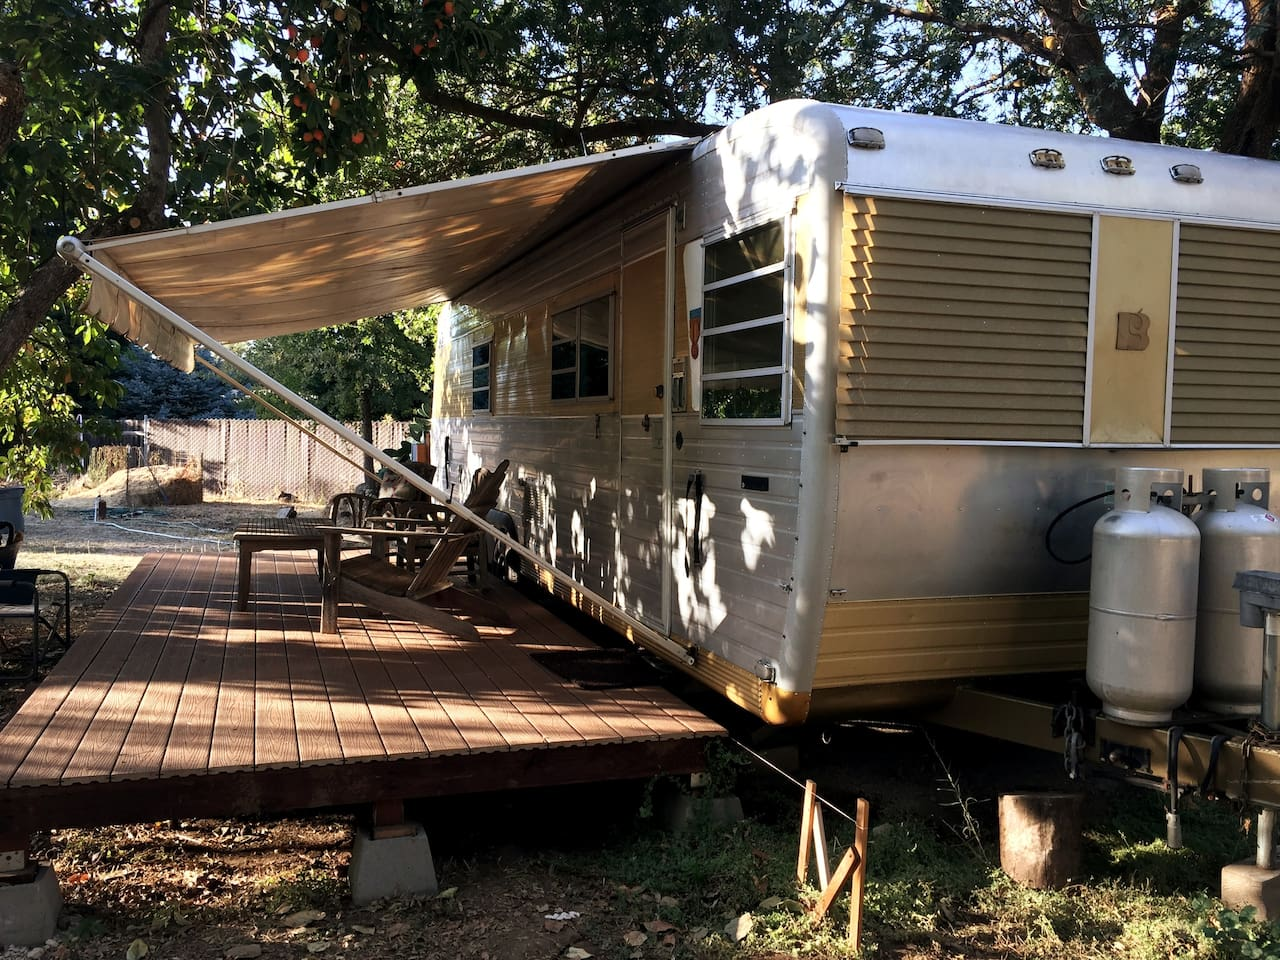 Trailer with awning extended